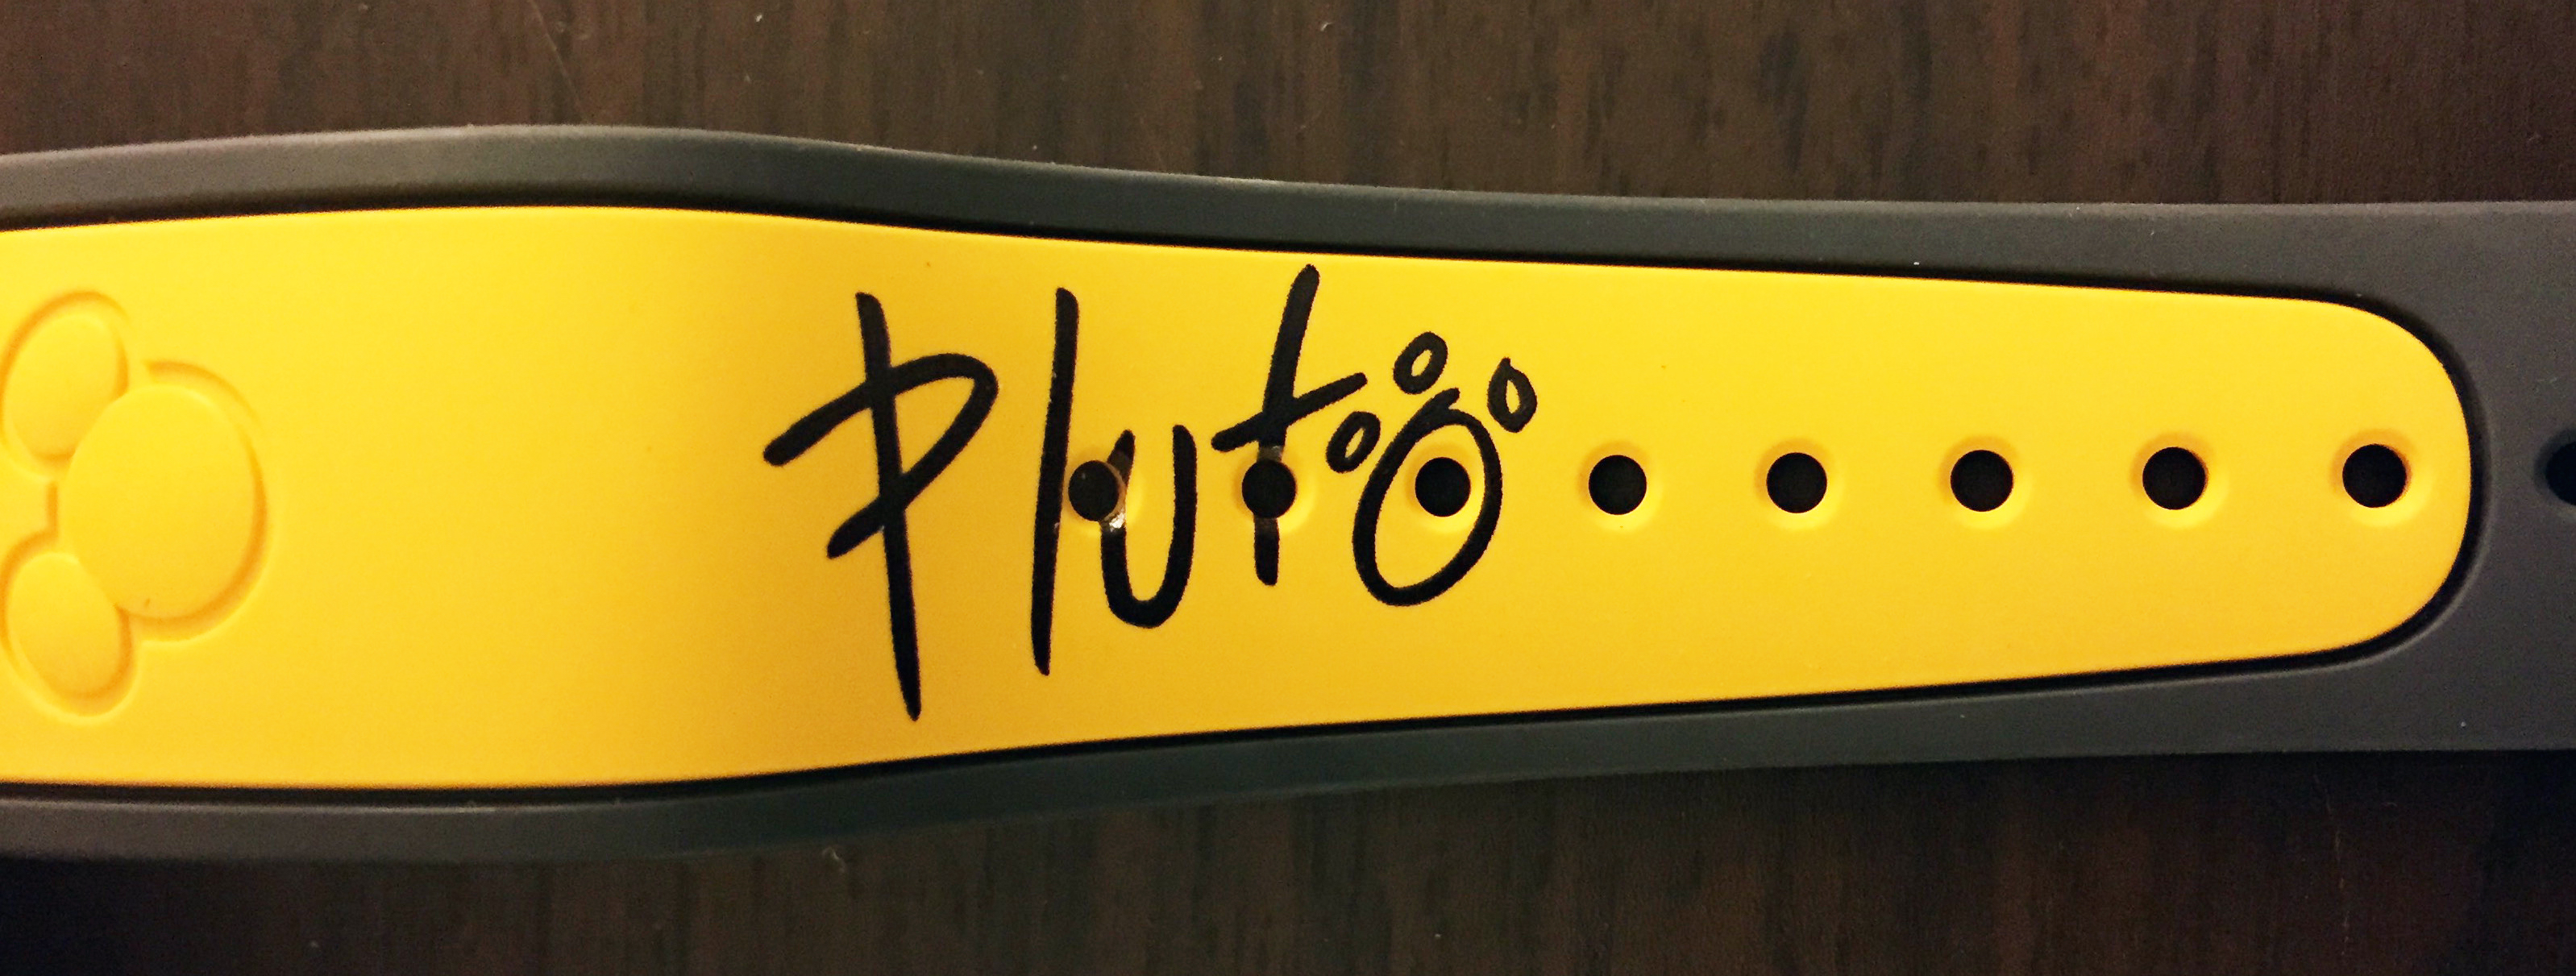 pluto_side